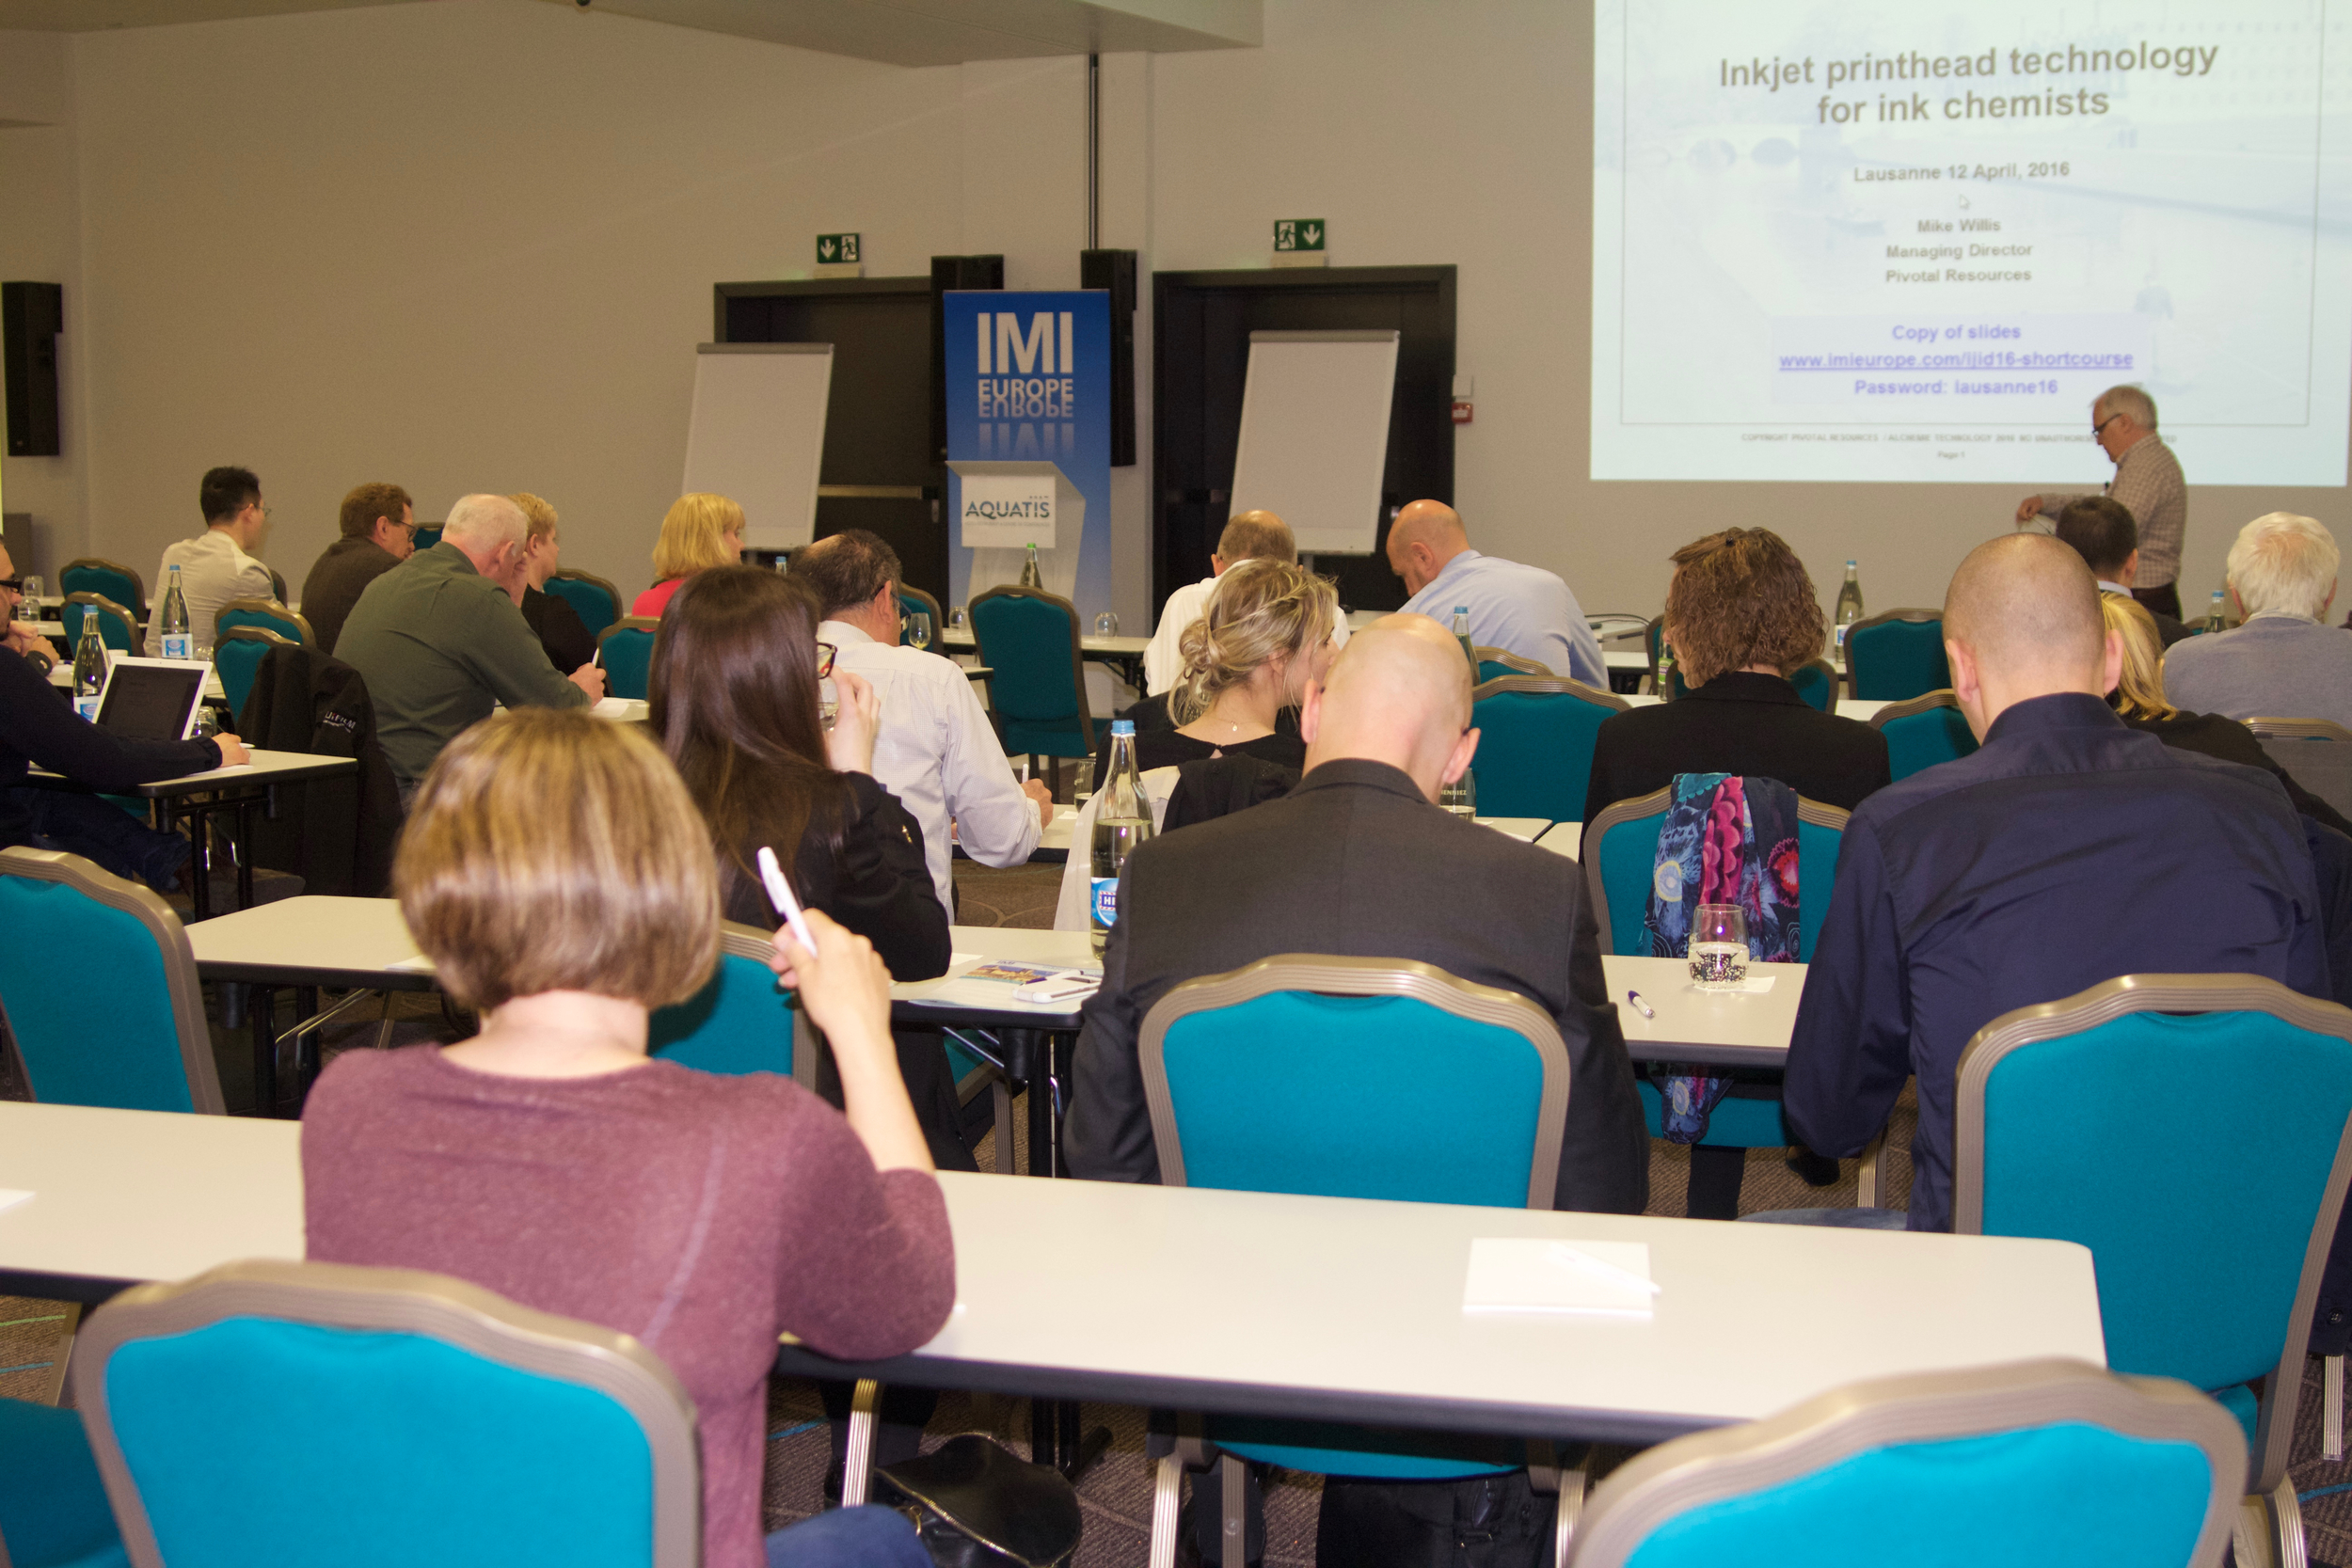 Printhead Technology Course presented by Mike Willis